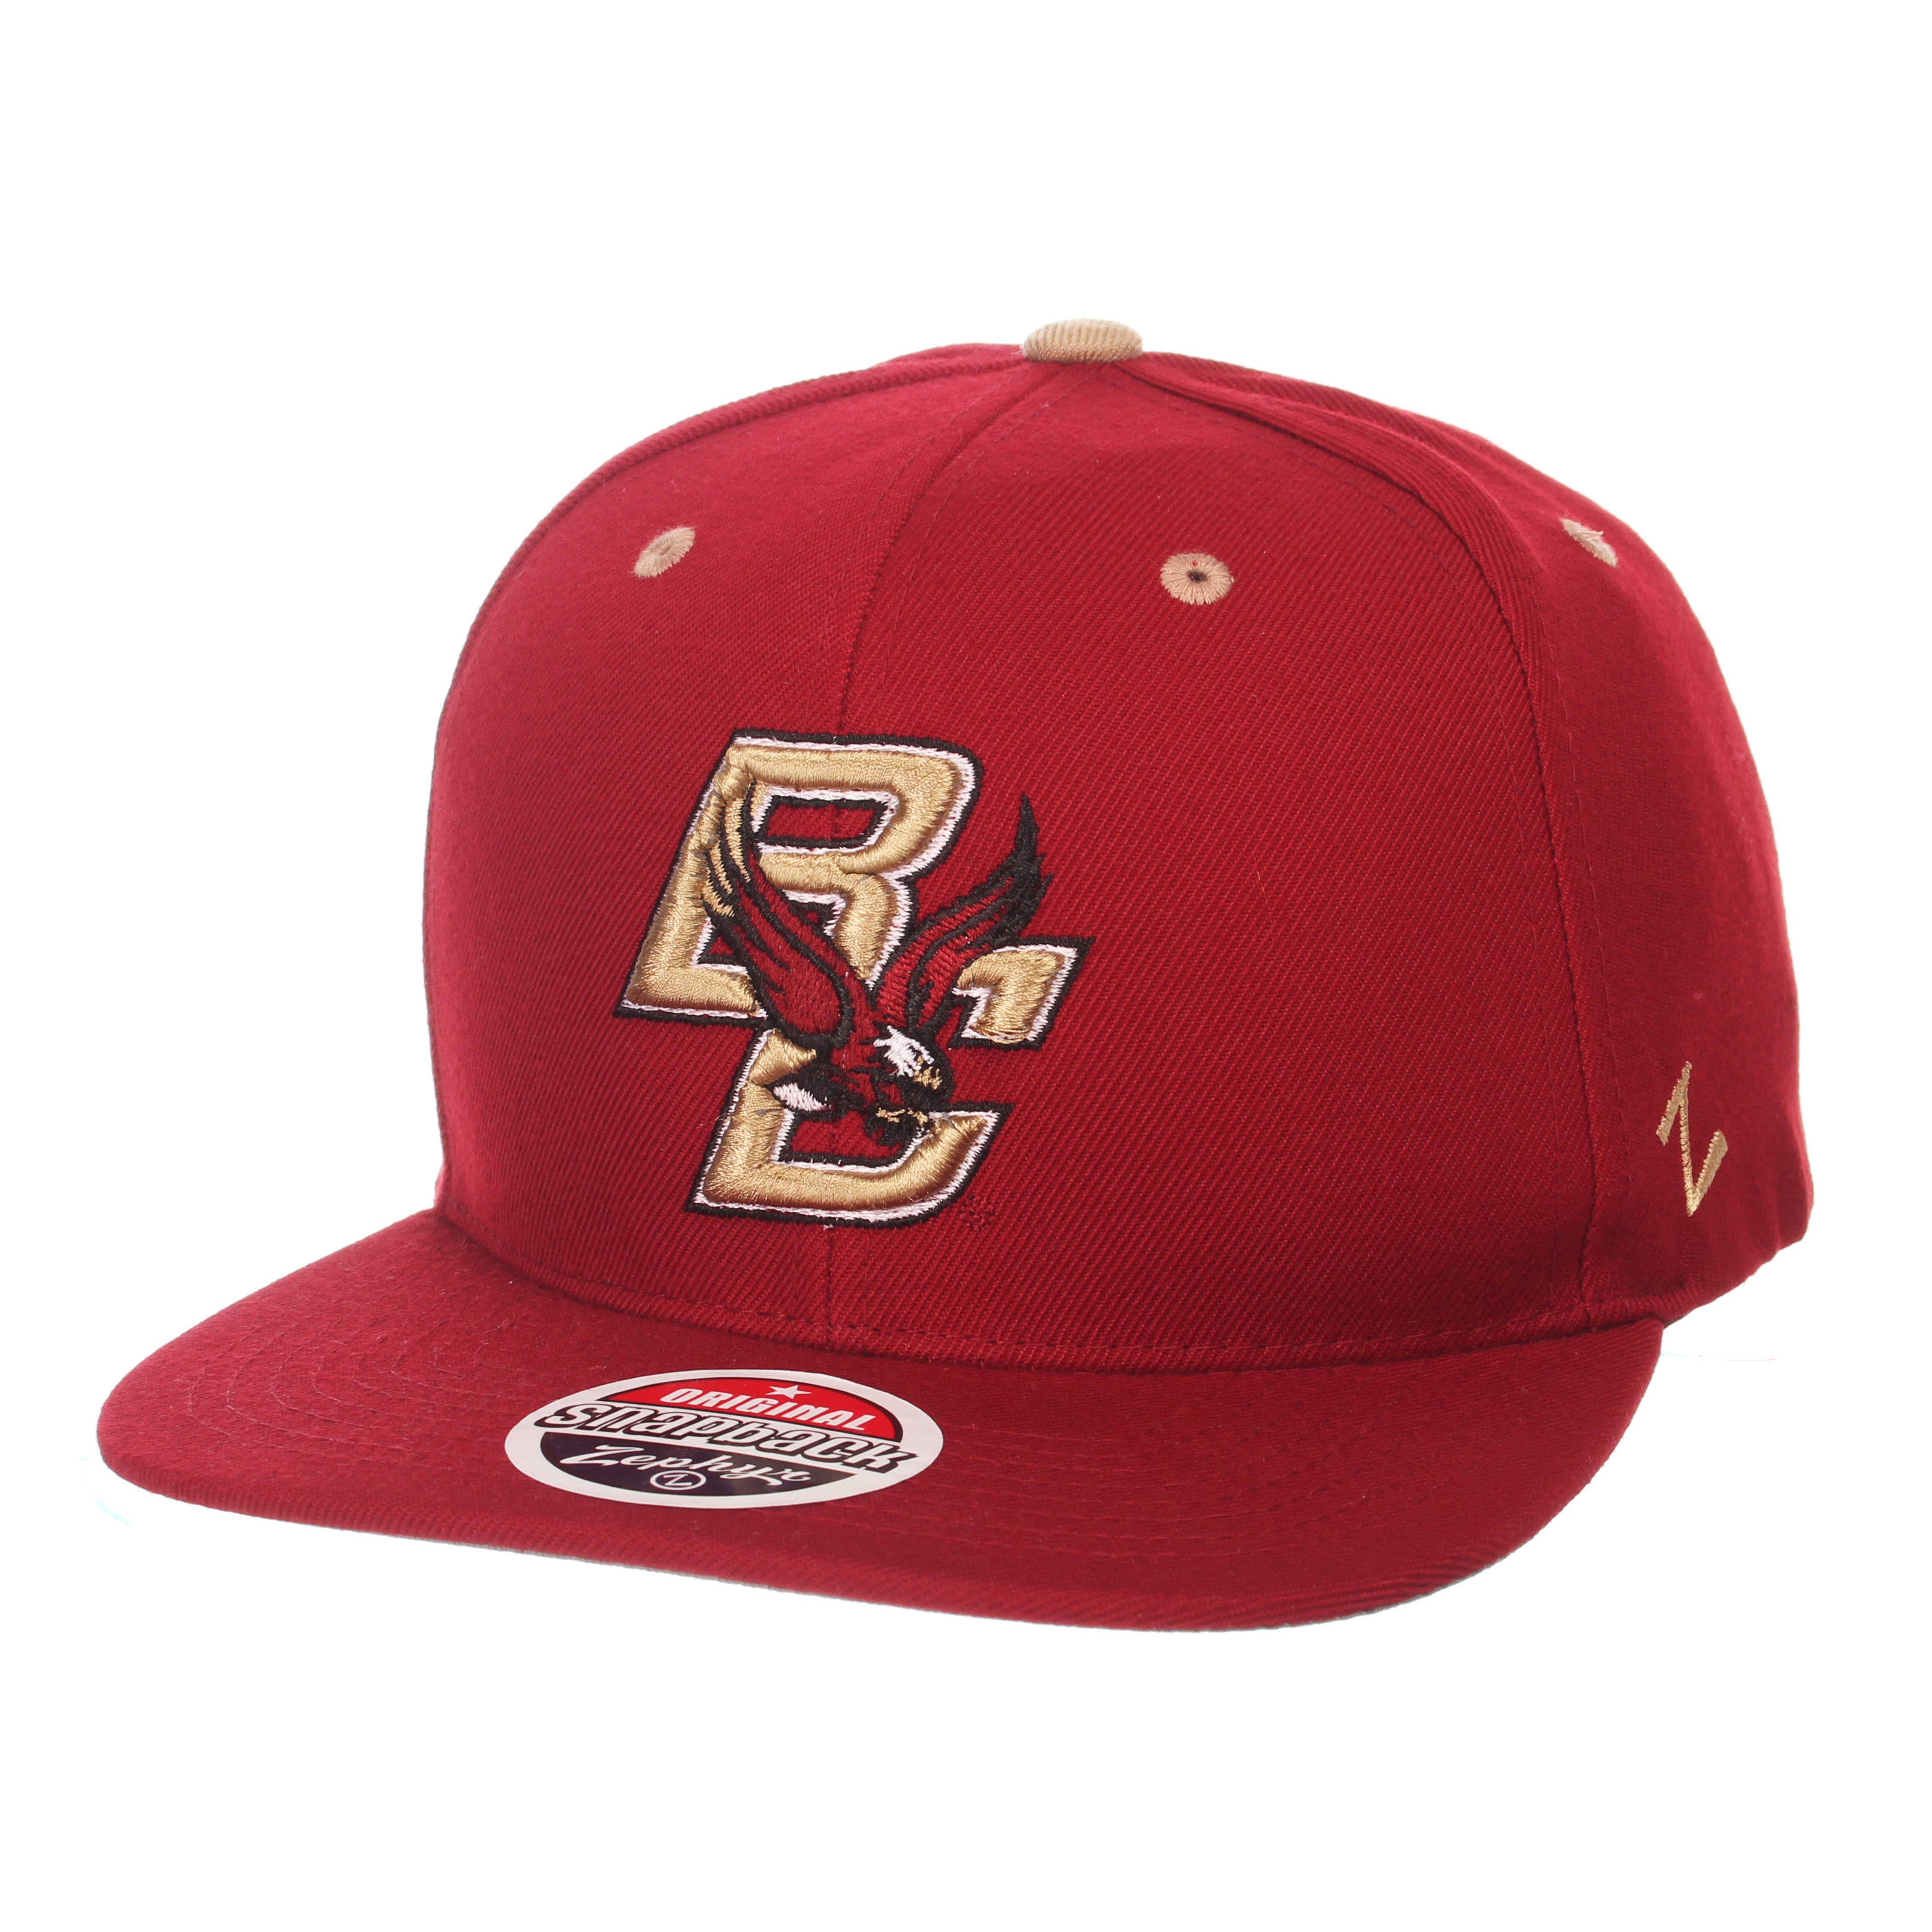 Boston College Z11